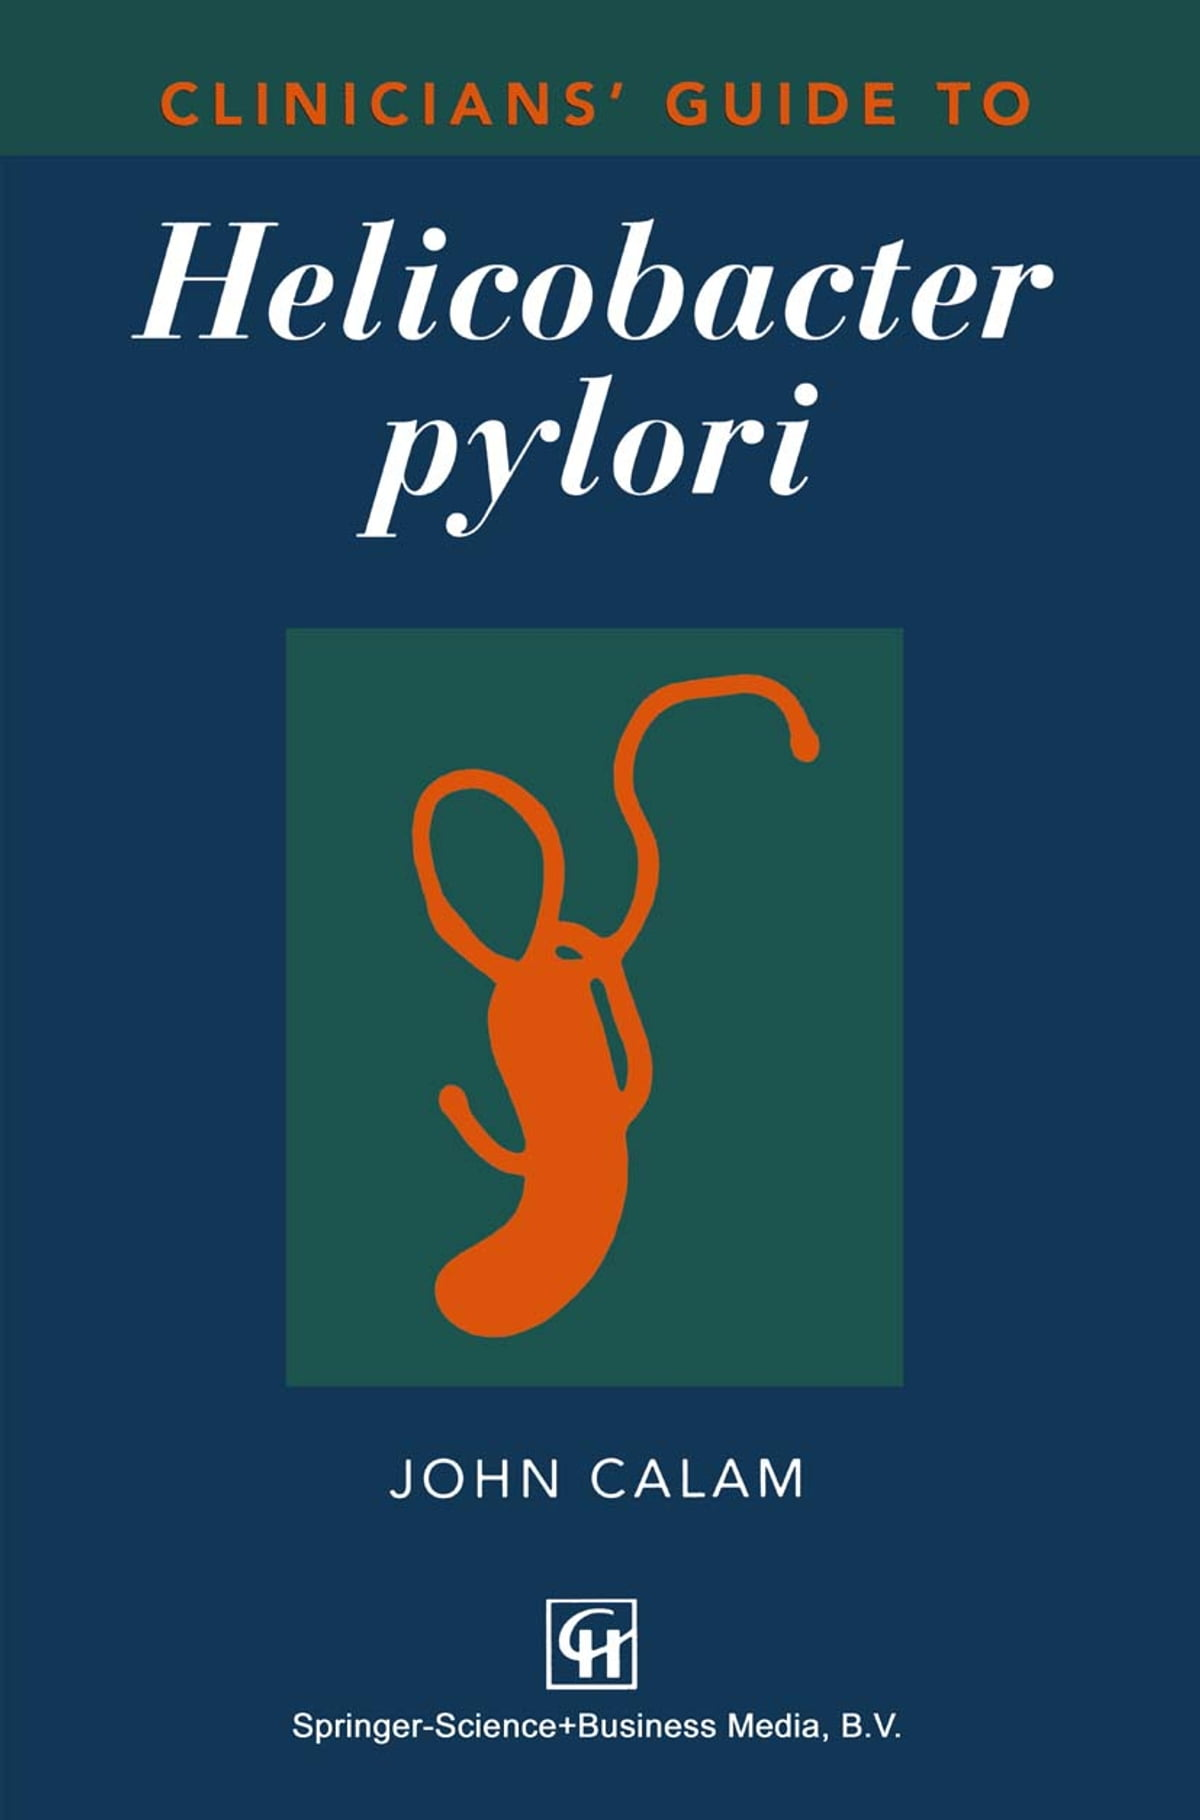 h pylori hpac instructions